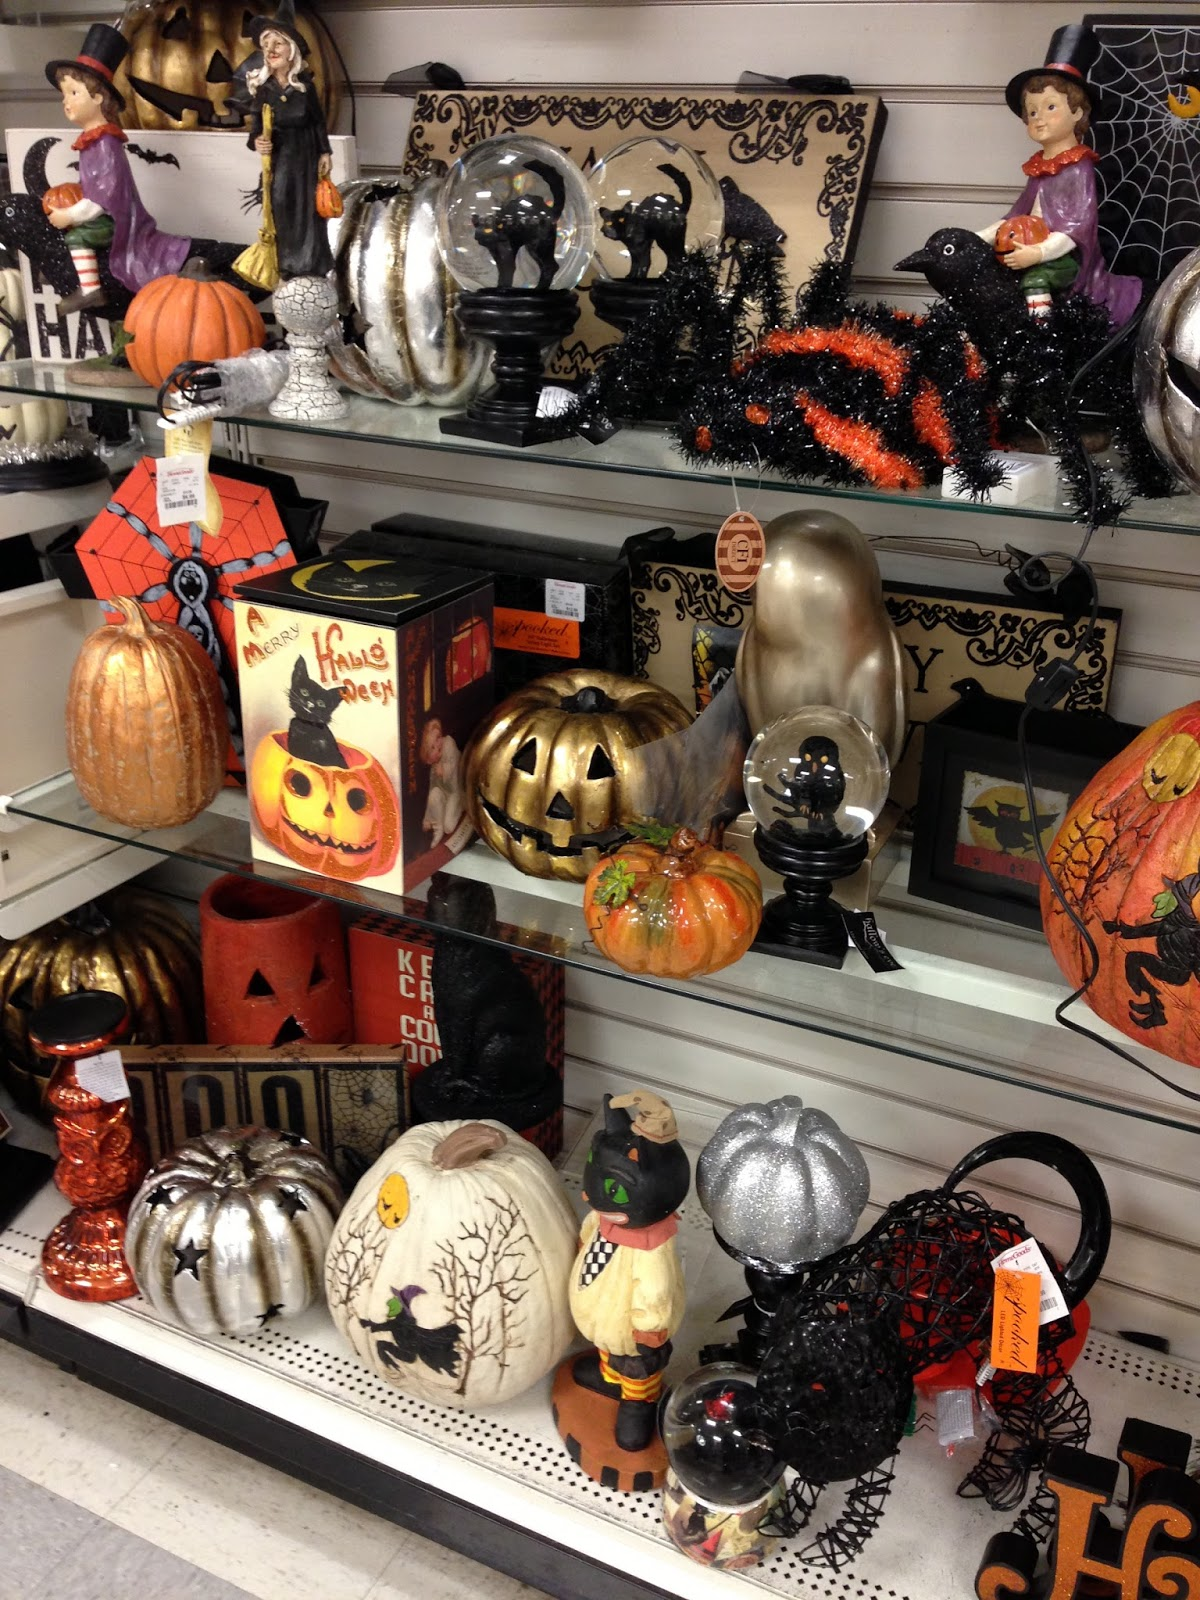 Fright Bites Photo Report Halloween 2013 Finds At Homegoods